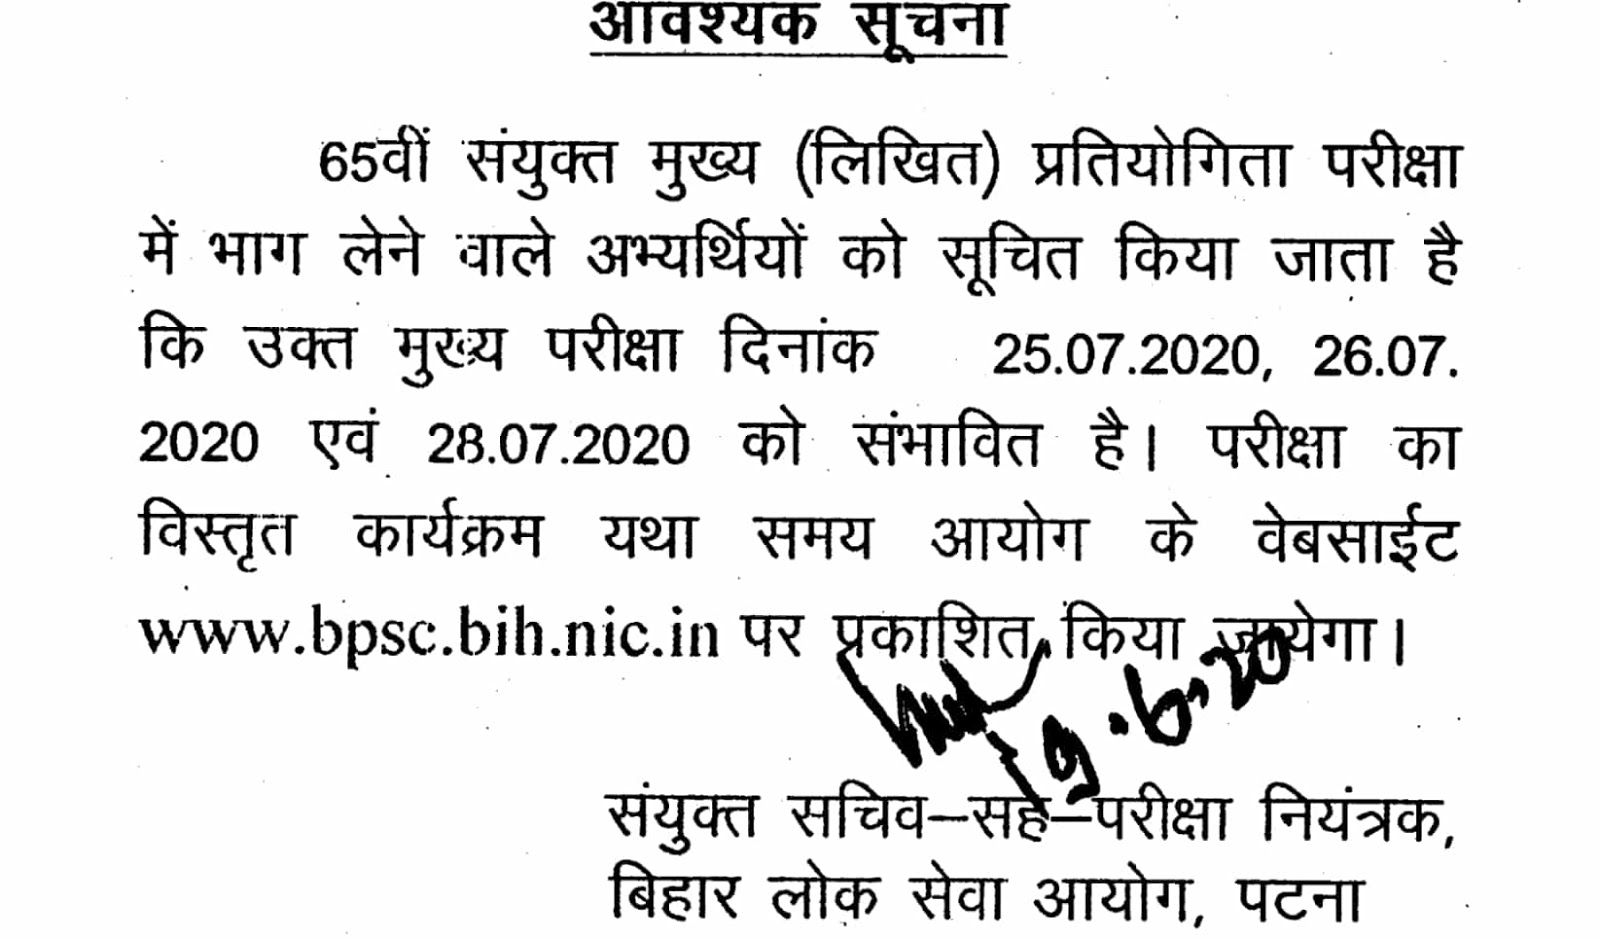 BPSC Mains 65th Exam Dates